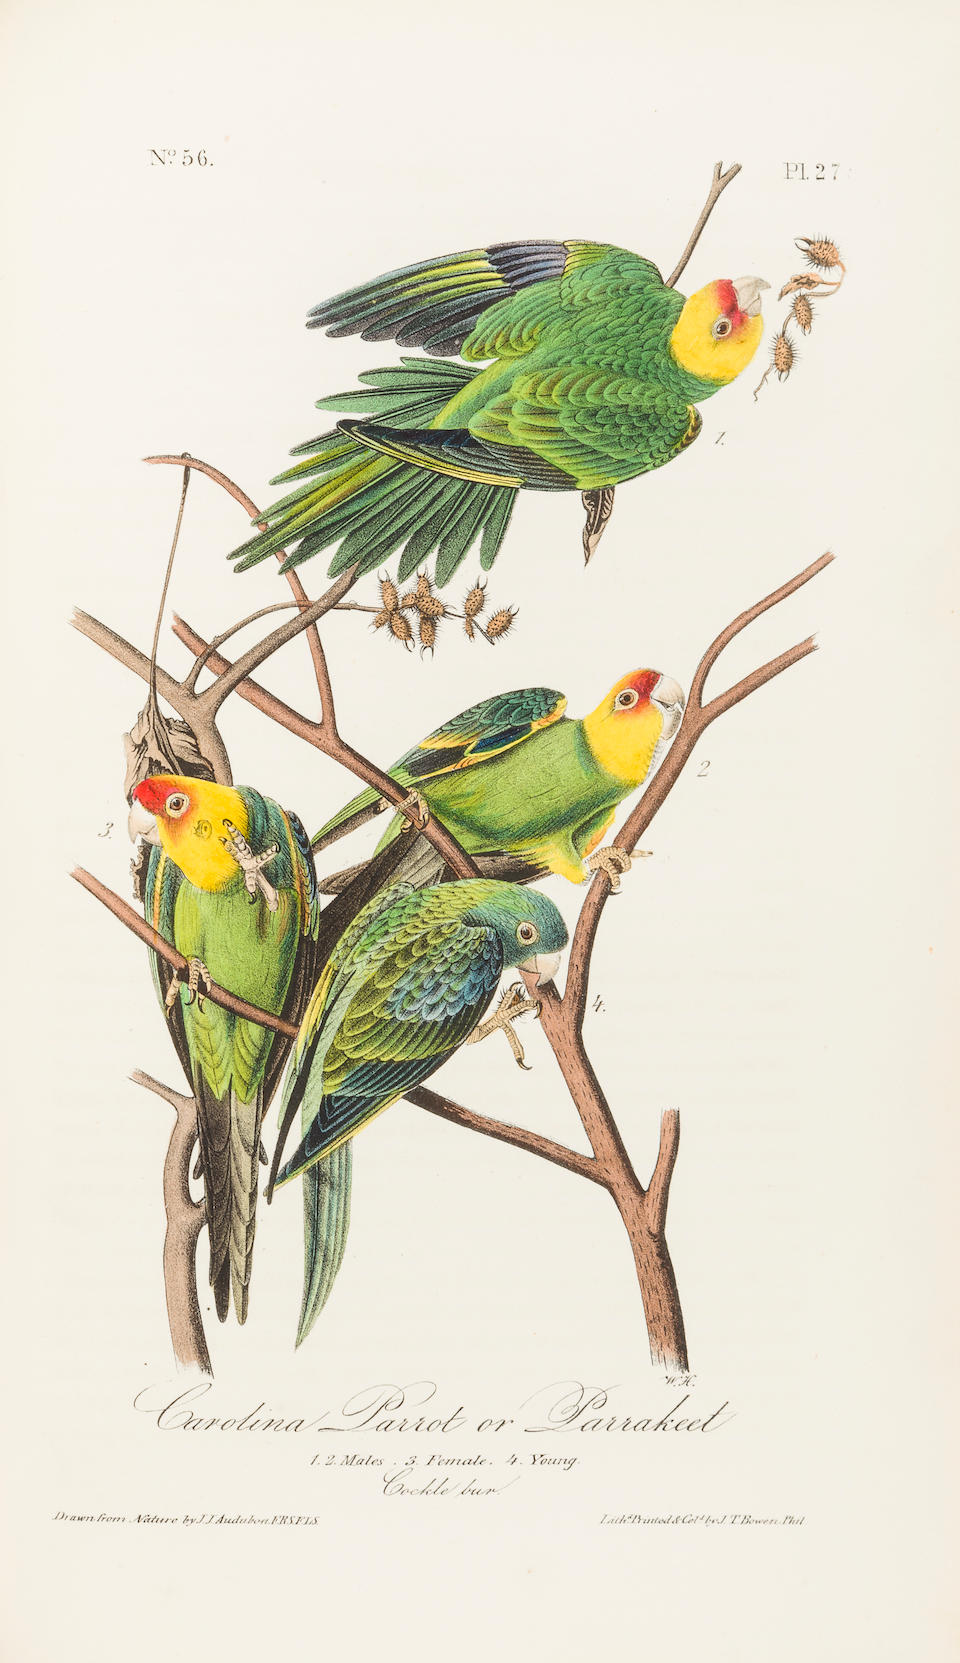 AUDUBON, JOHN JAMES. 1785-1851. The Birds of America, from drawings made in the United States and their territories. New York & Philadelphia: Audubon and J.B.Chevalier, [1839]-1840-1844.